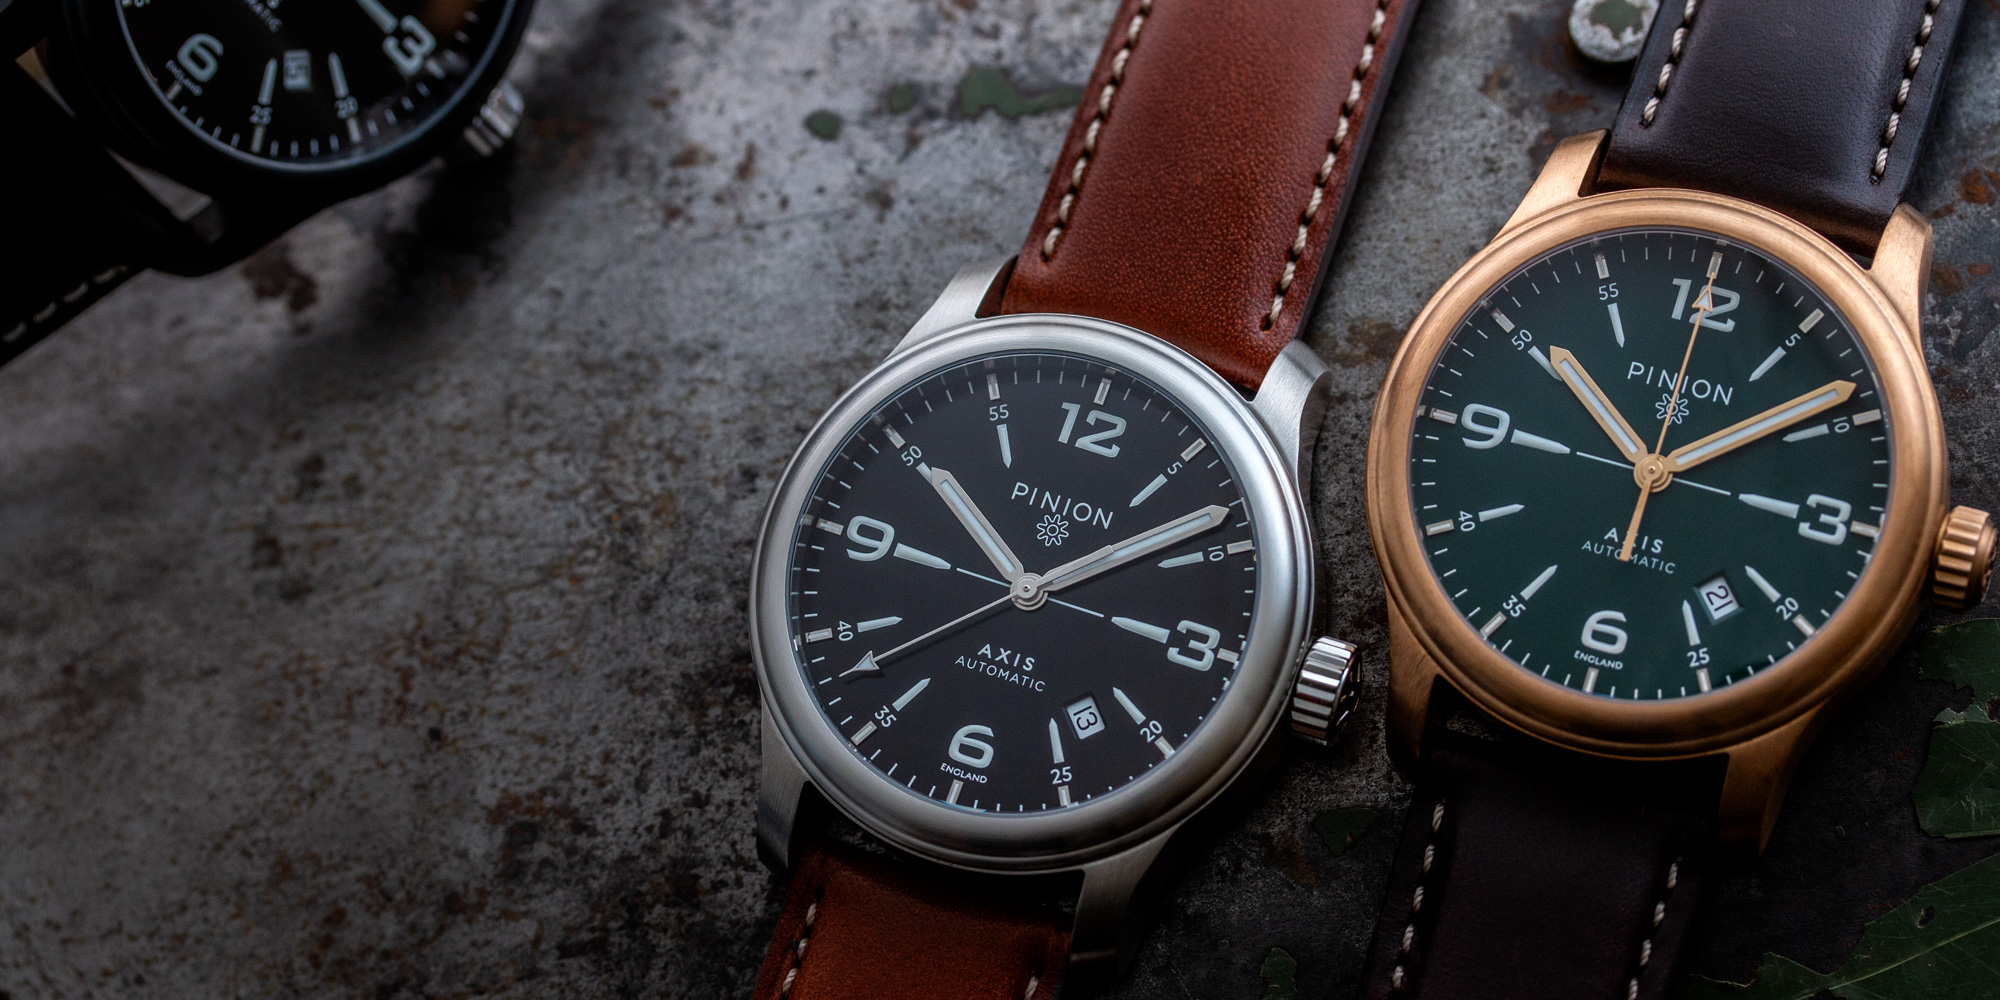 british-watches-pinion-axis-ii-automatic-watch-collection